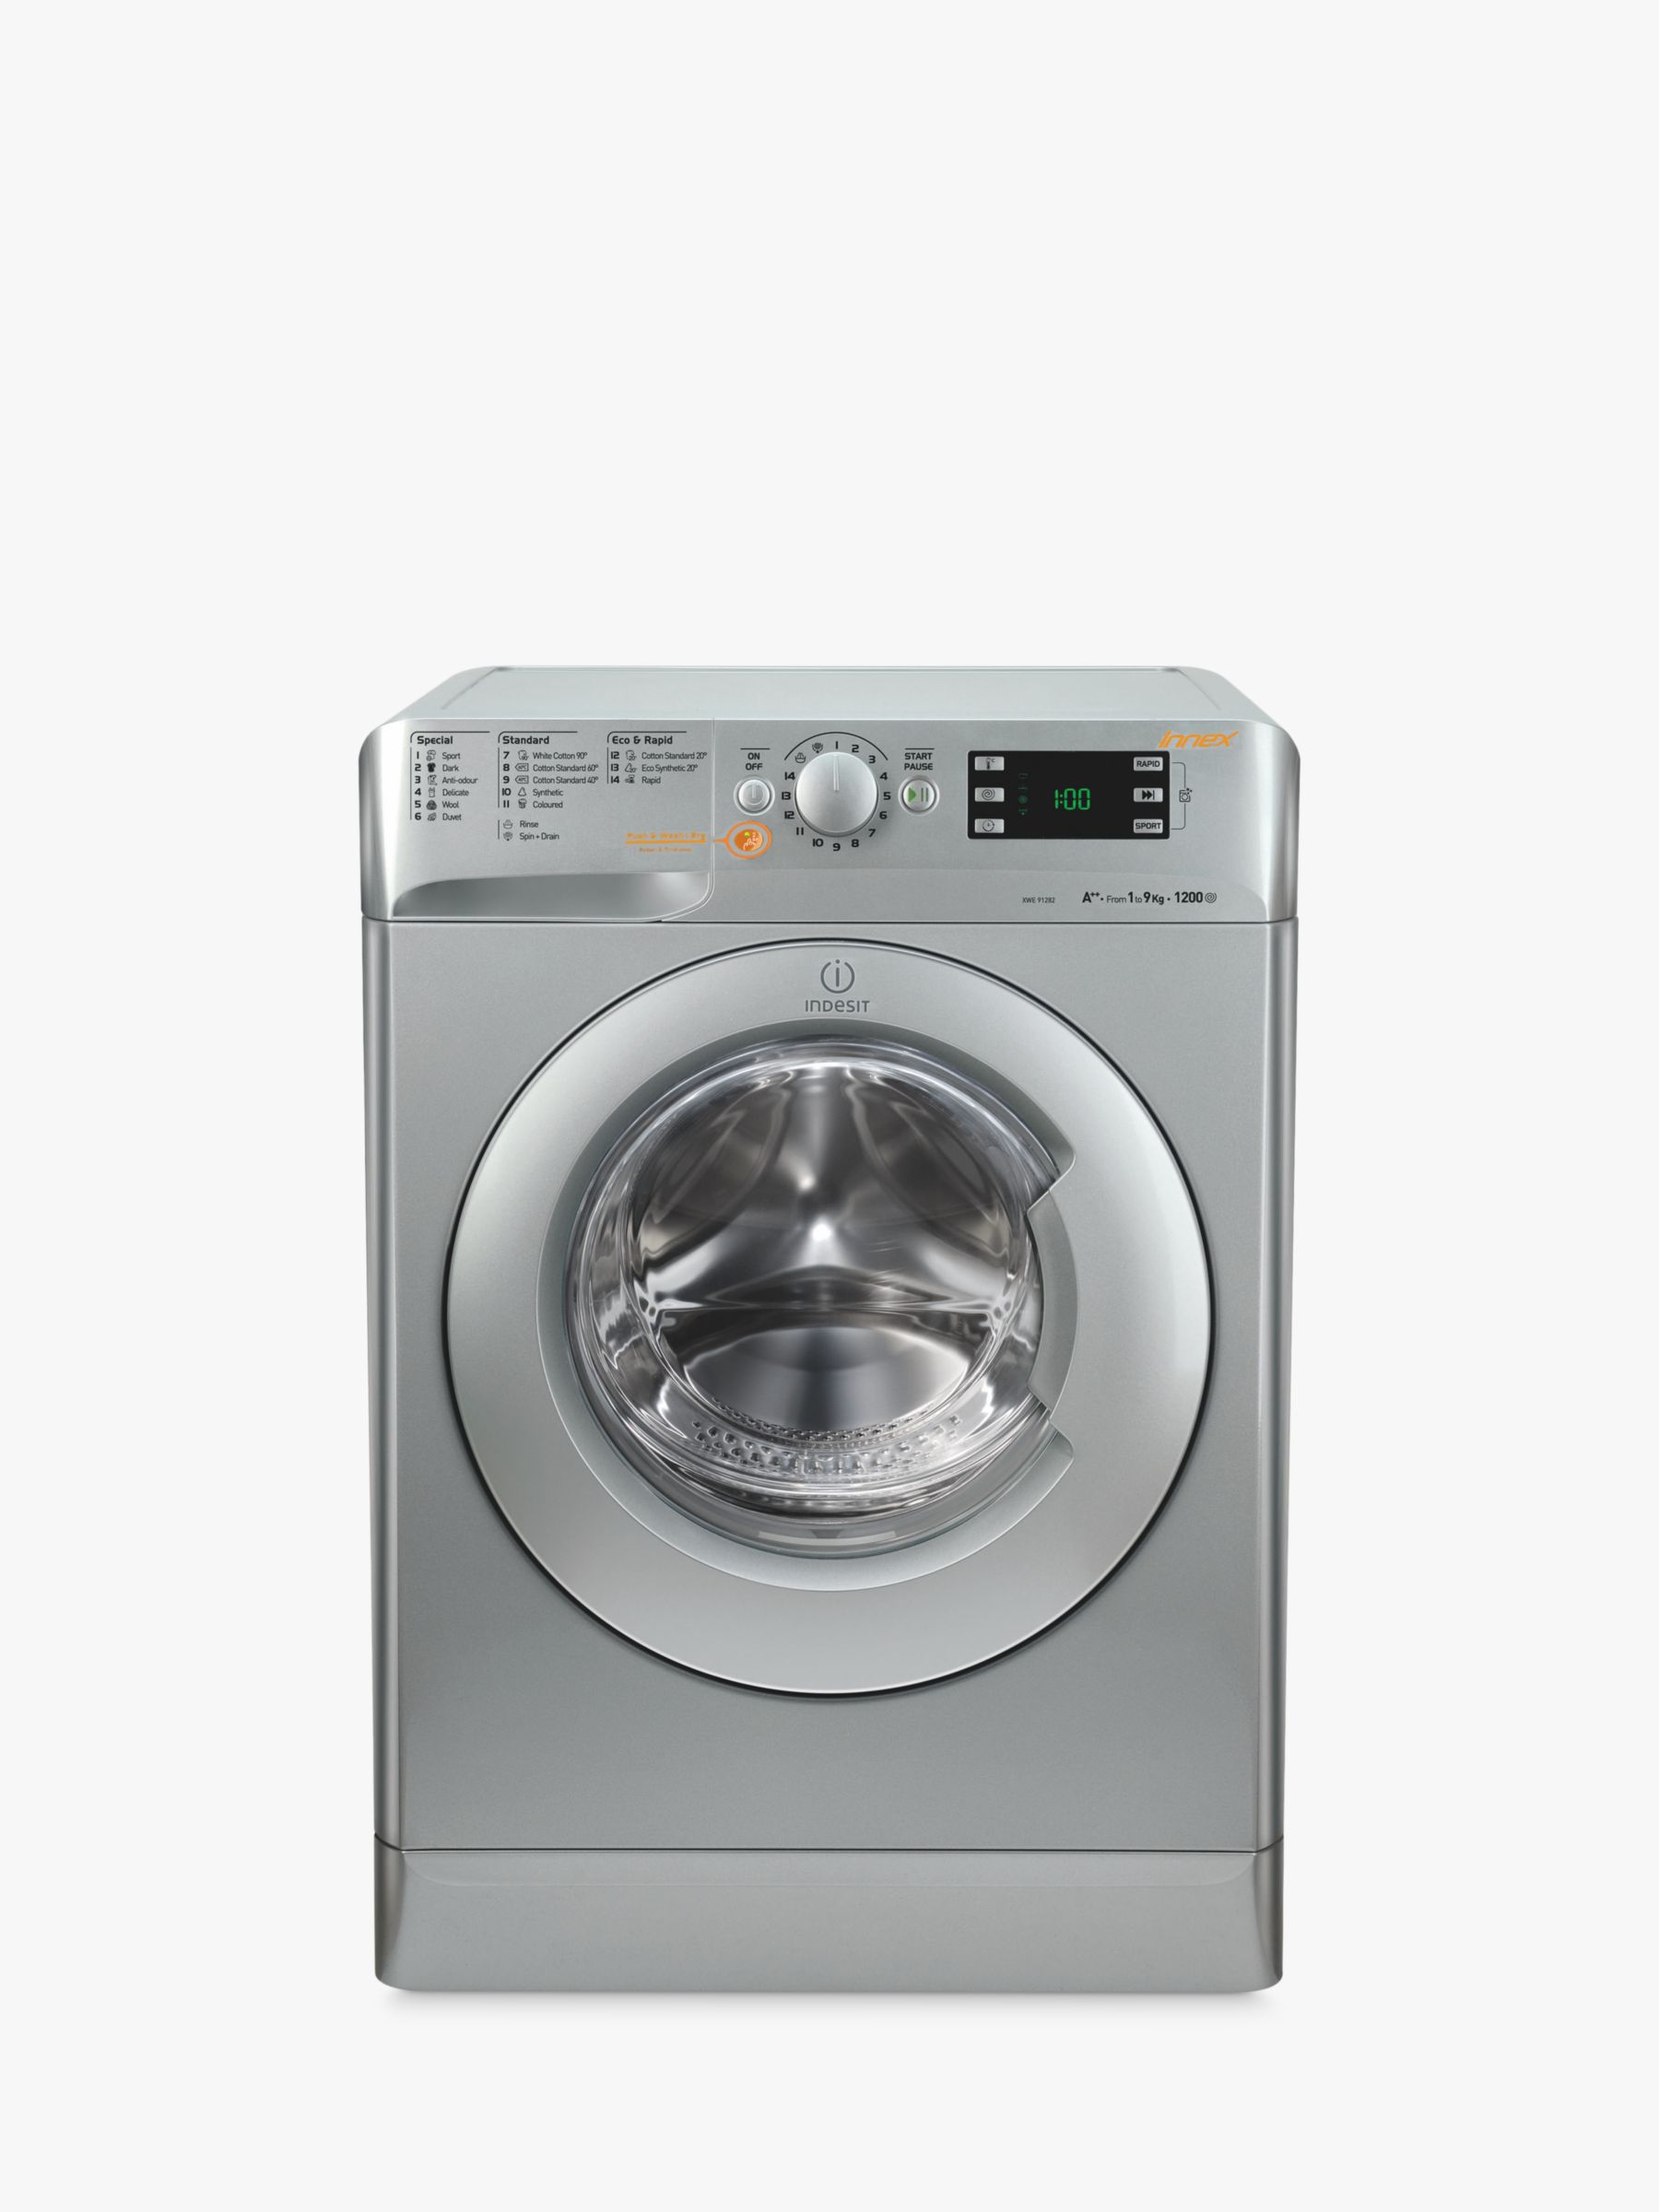 Indesit Indesit XWDE861480XS Washer Dryer, 8kg Wash/6kg Dry Load, A Energy Rating, 1400rpm Spin, Silver